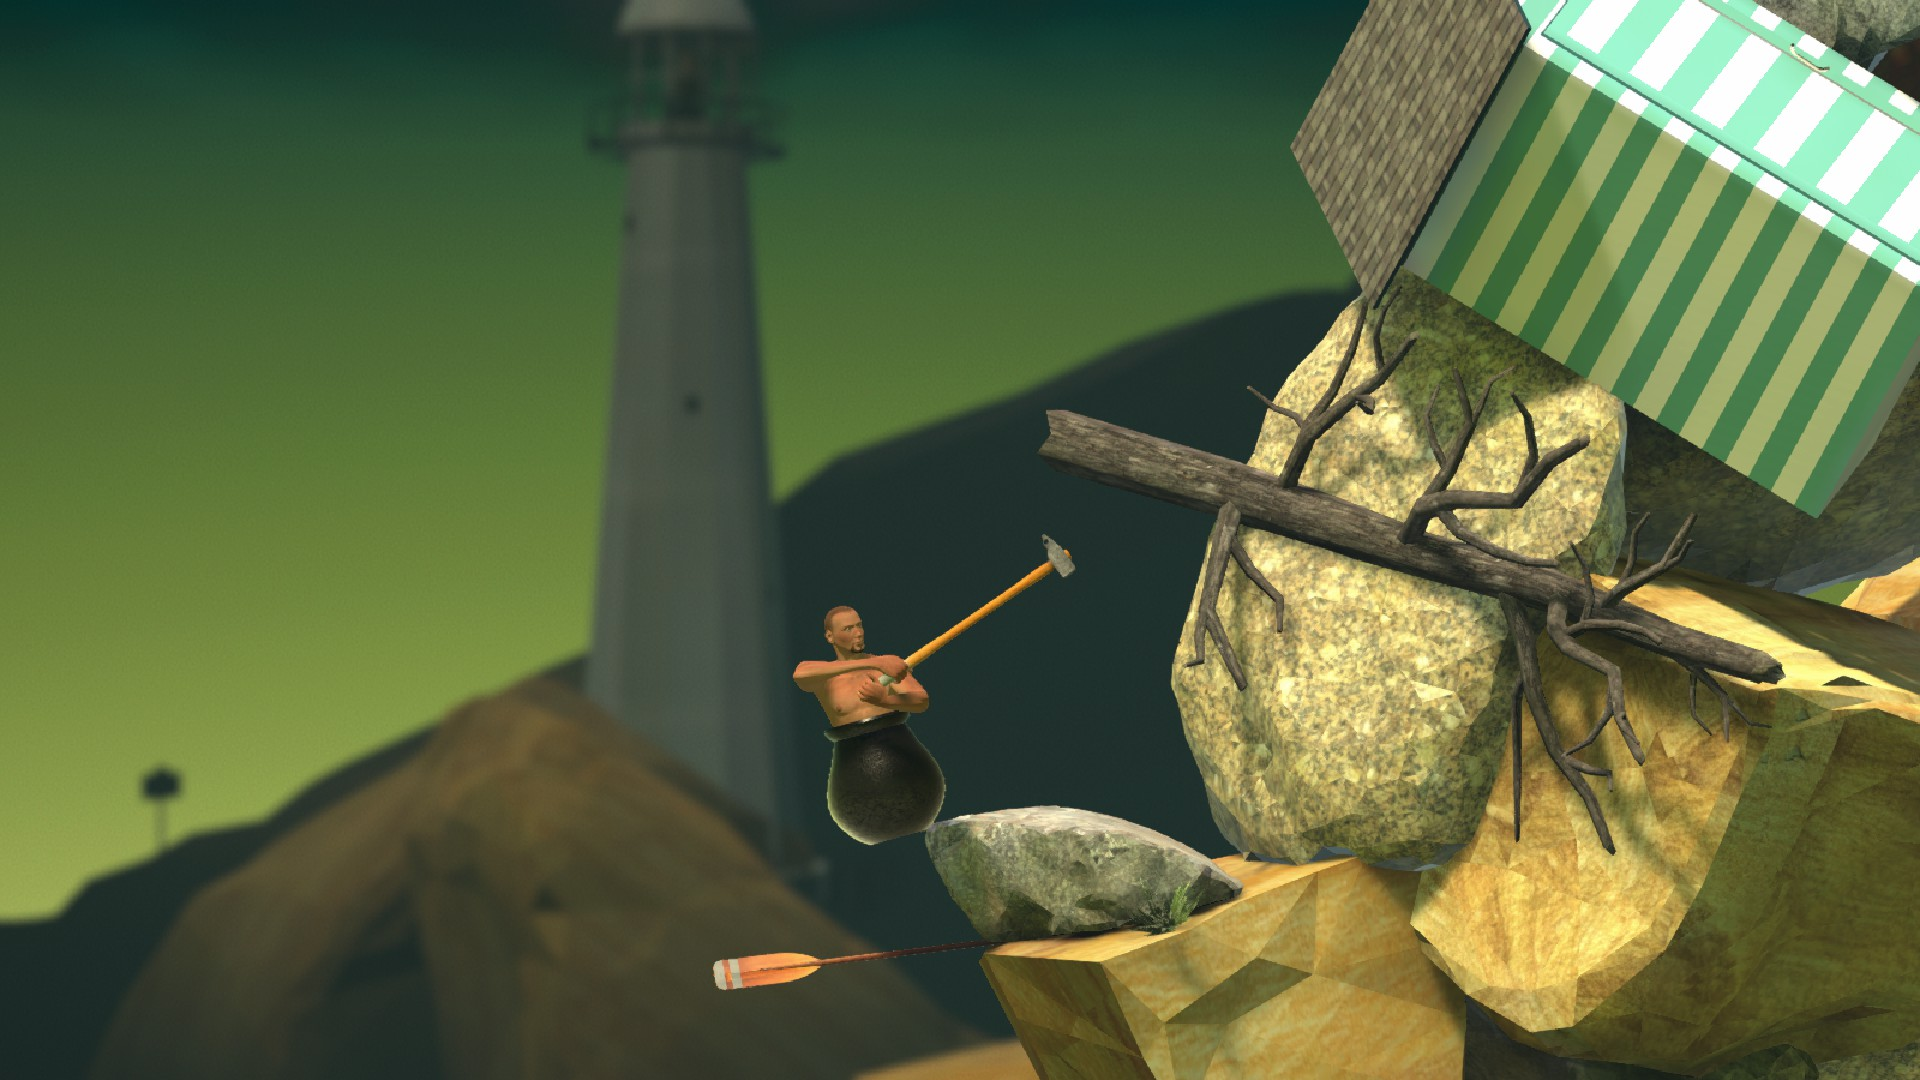 Review - Getting Over It With Bennett Foddy (PC)